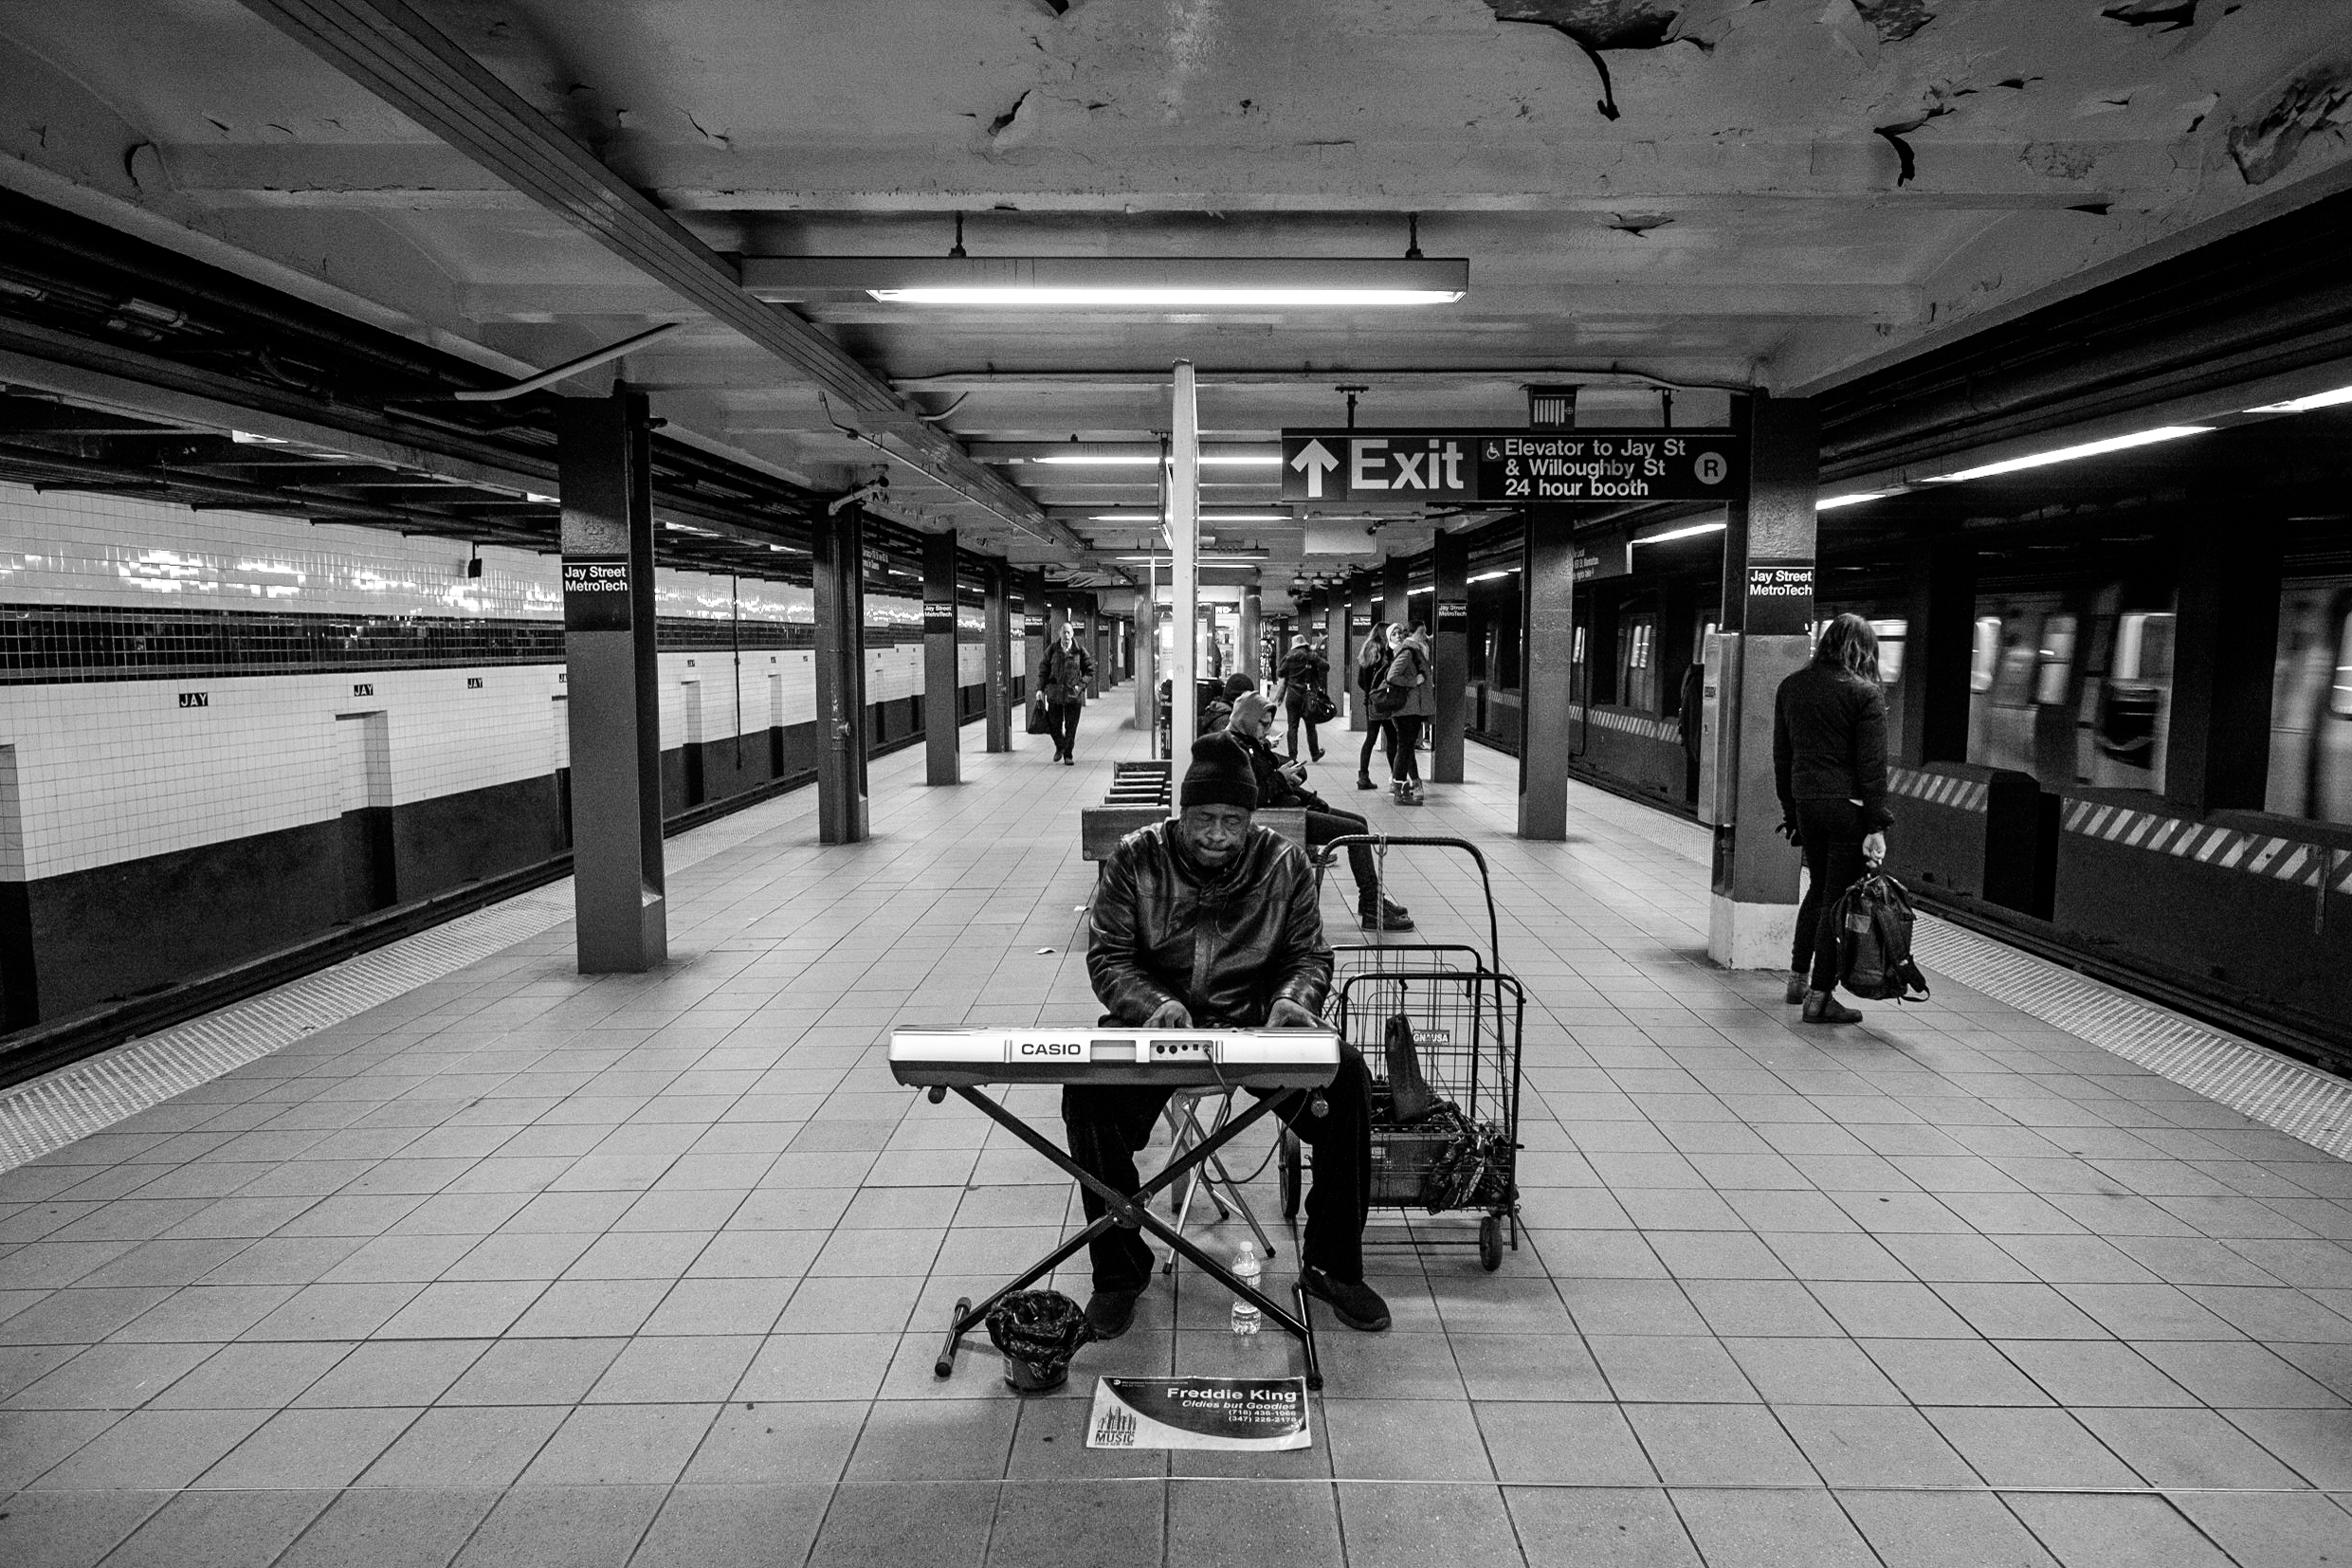 subway-musician-jay-street-black-and-white-photography